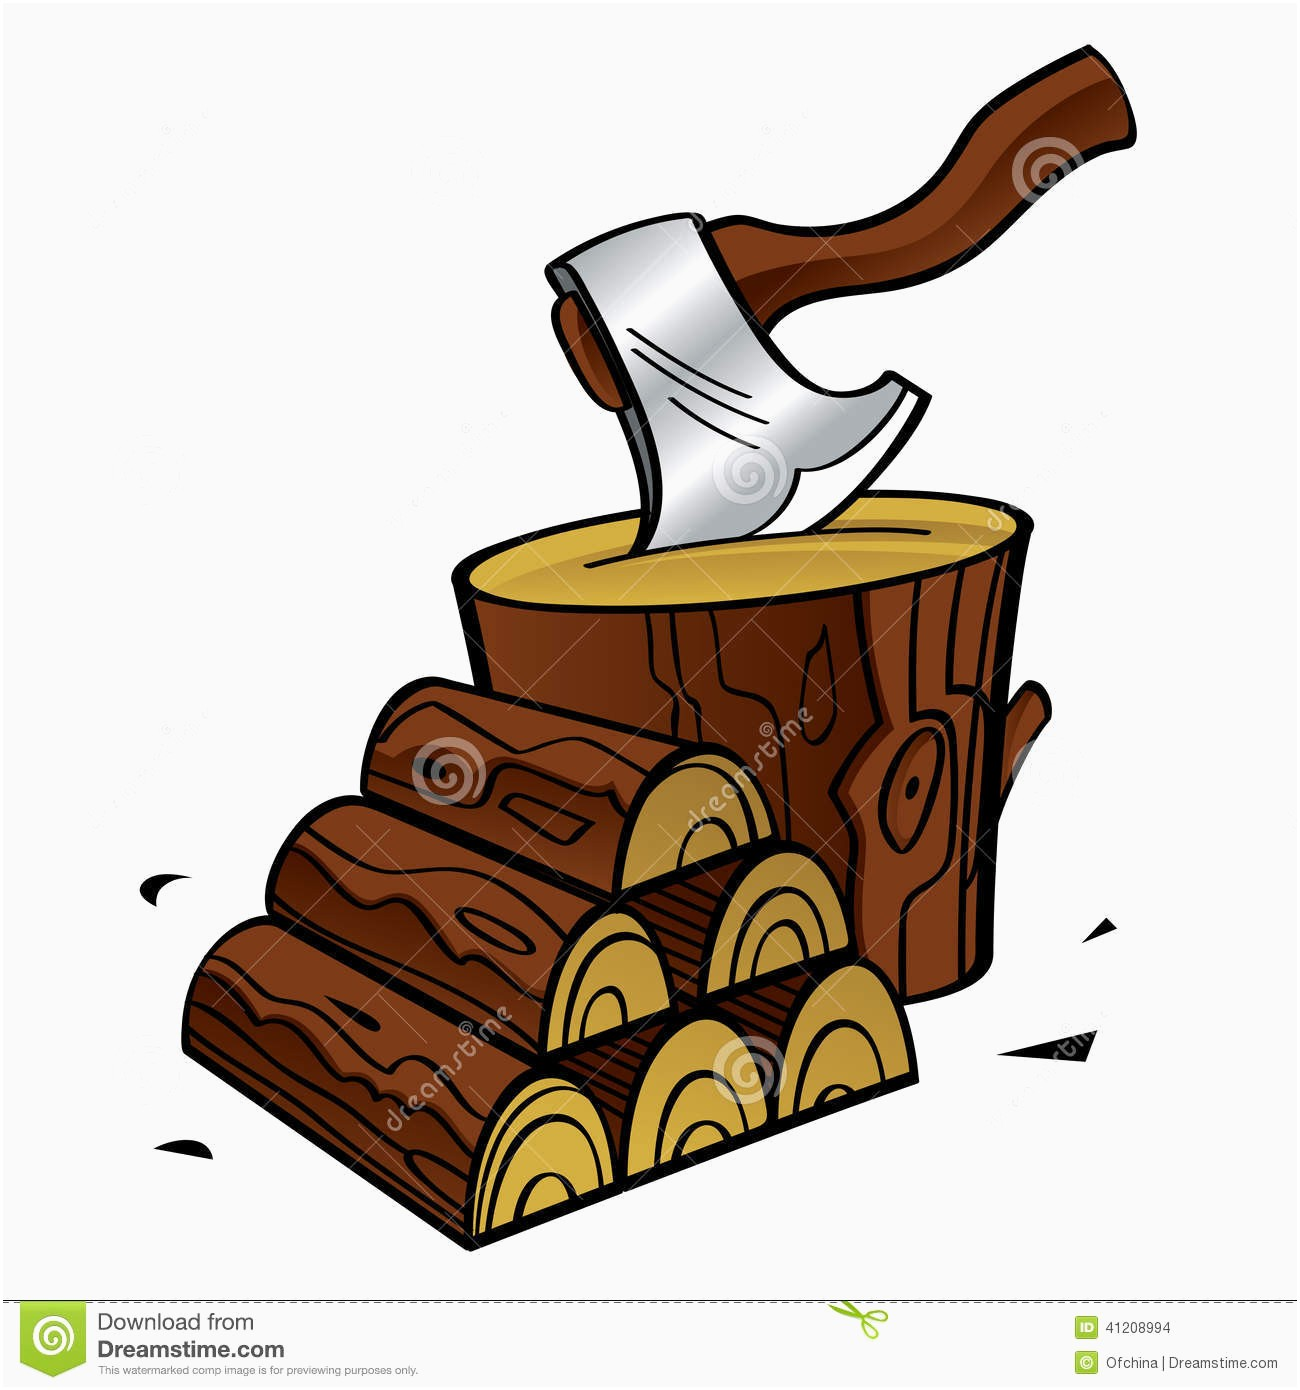 Firewood clipart. Wood beautiful log clip